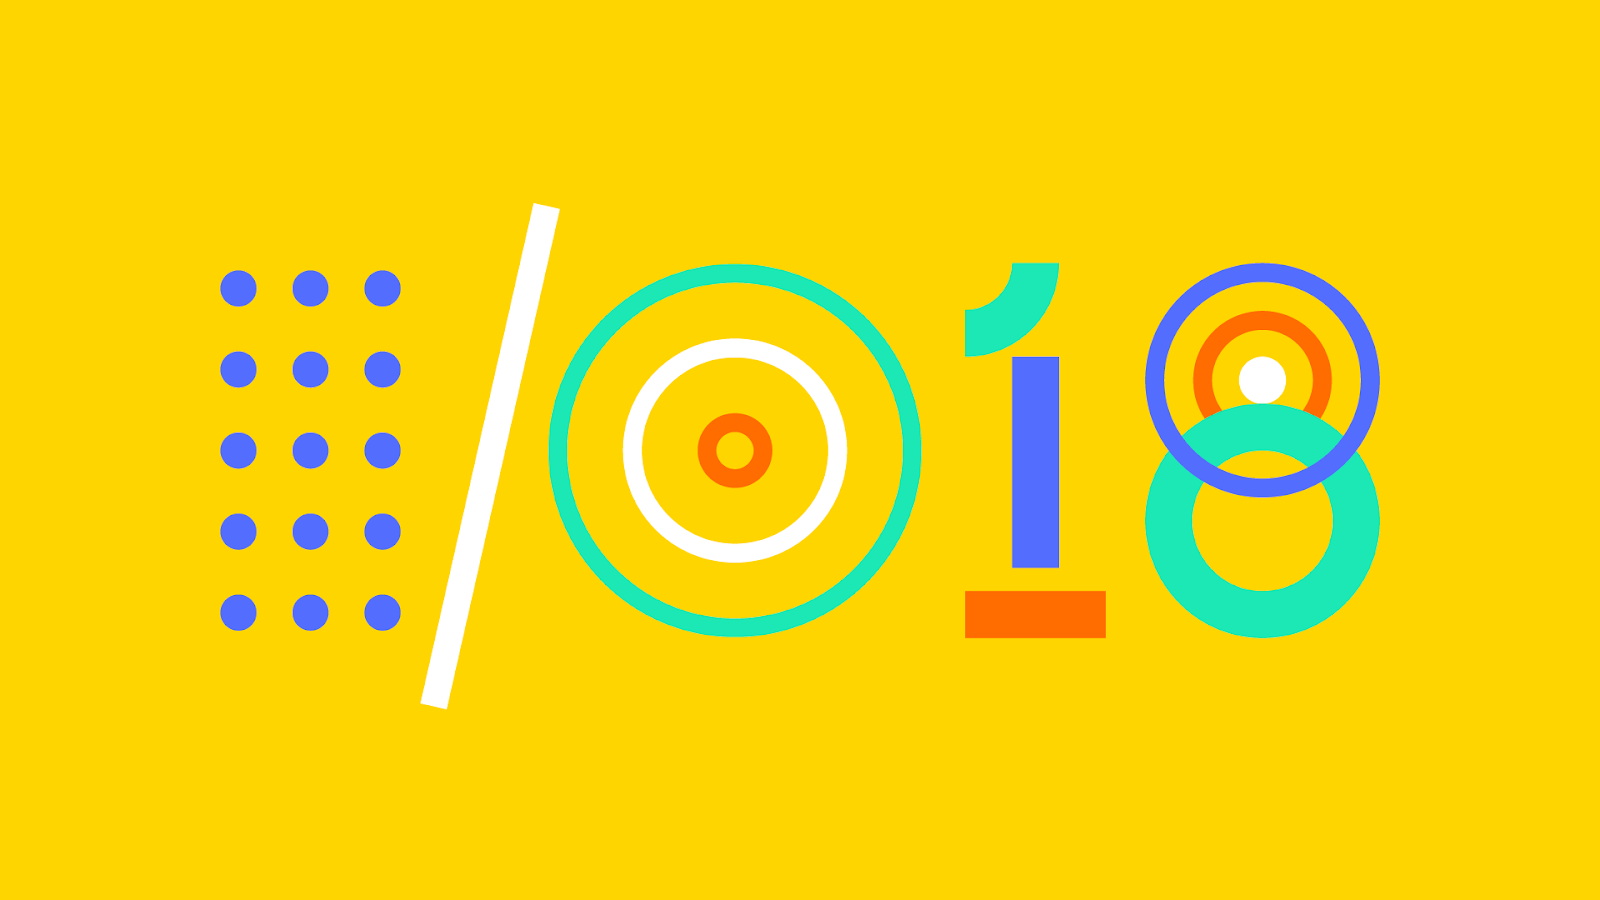 How we designed it: the Google I/O '18 Action for the Google